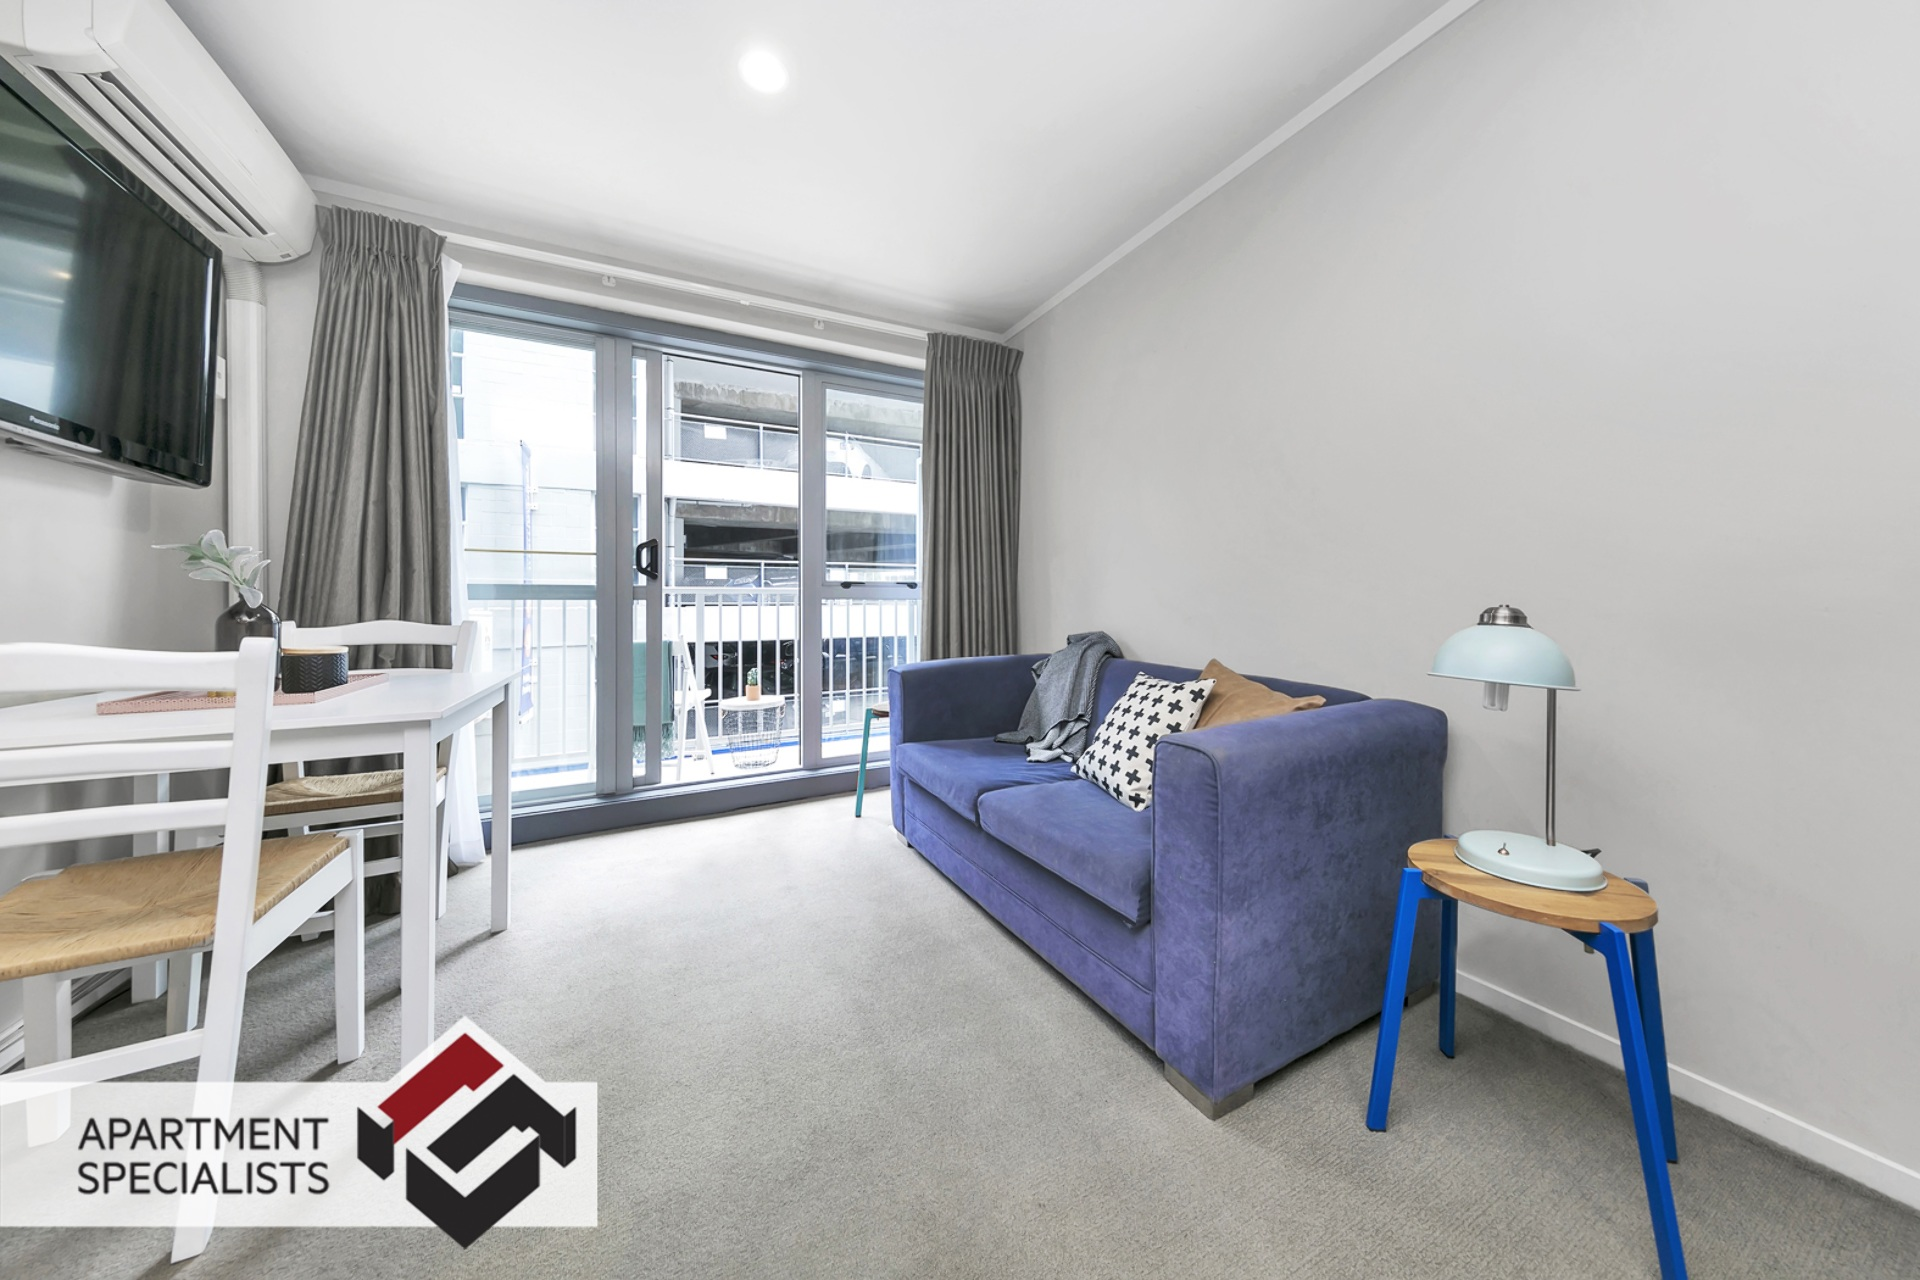 2 | 8 Bankside Street, City Centre | Apartment Specialists